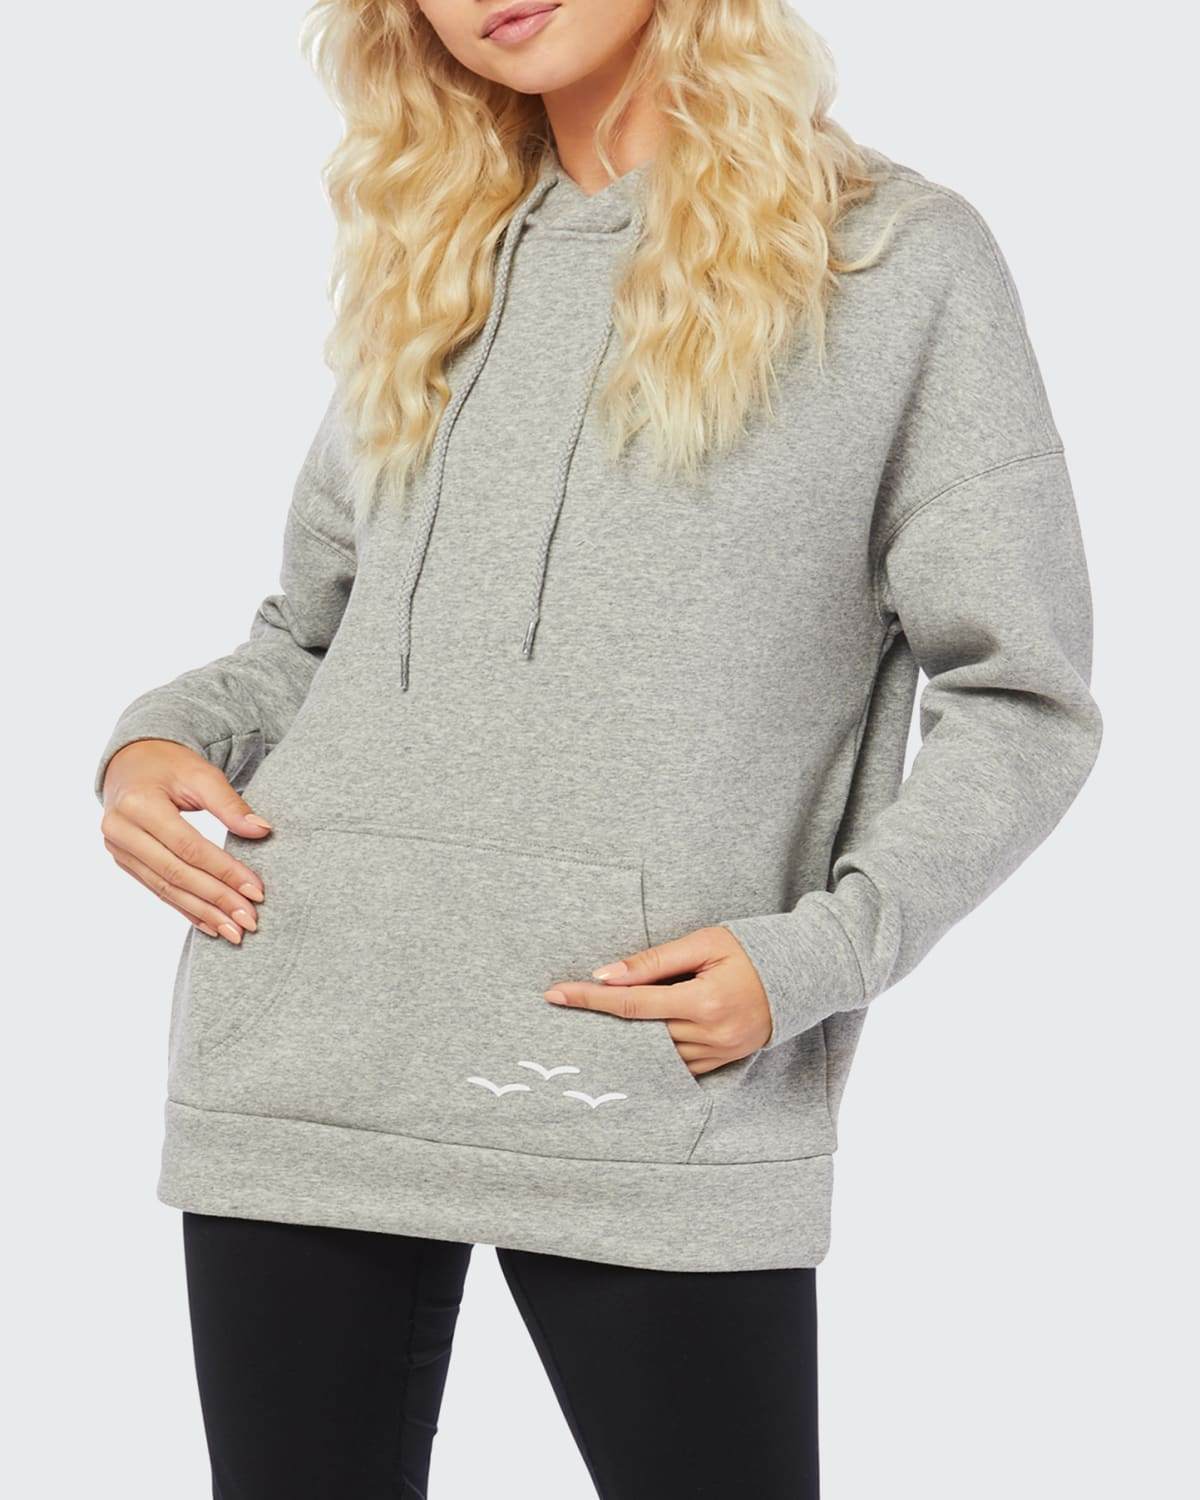 Cooper Ultra-Soft Pullover Sweater